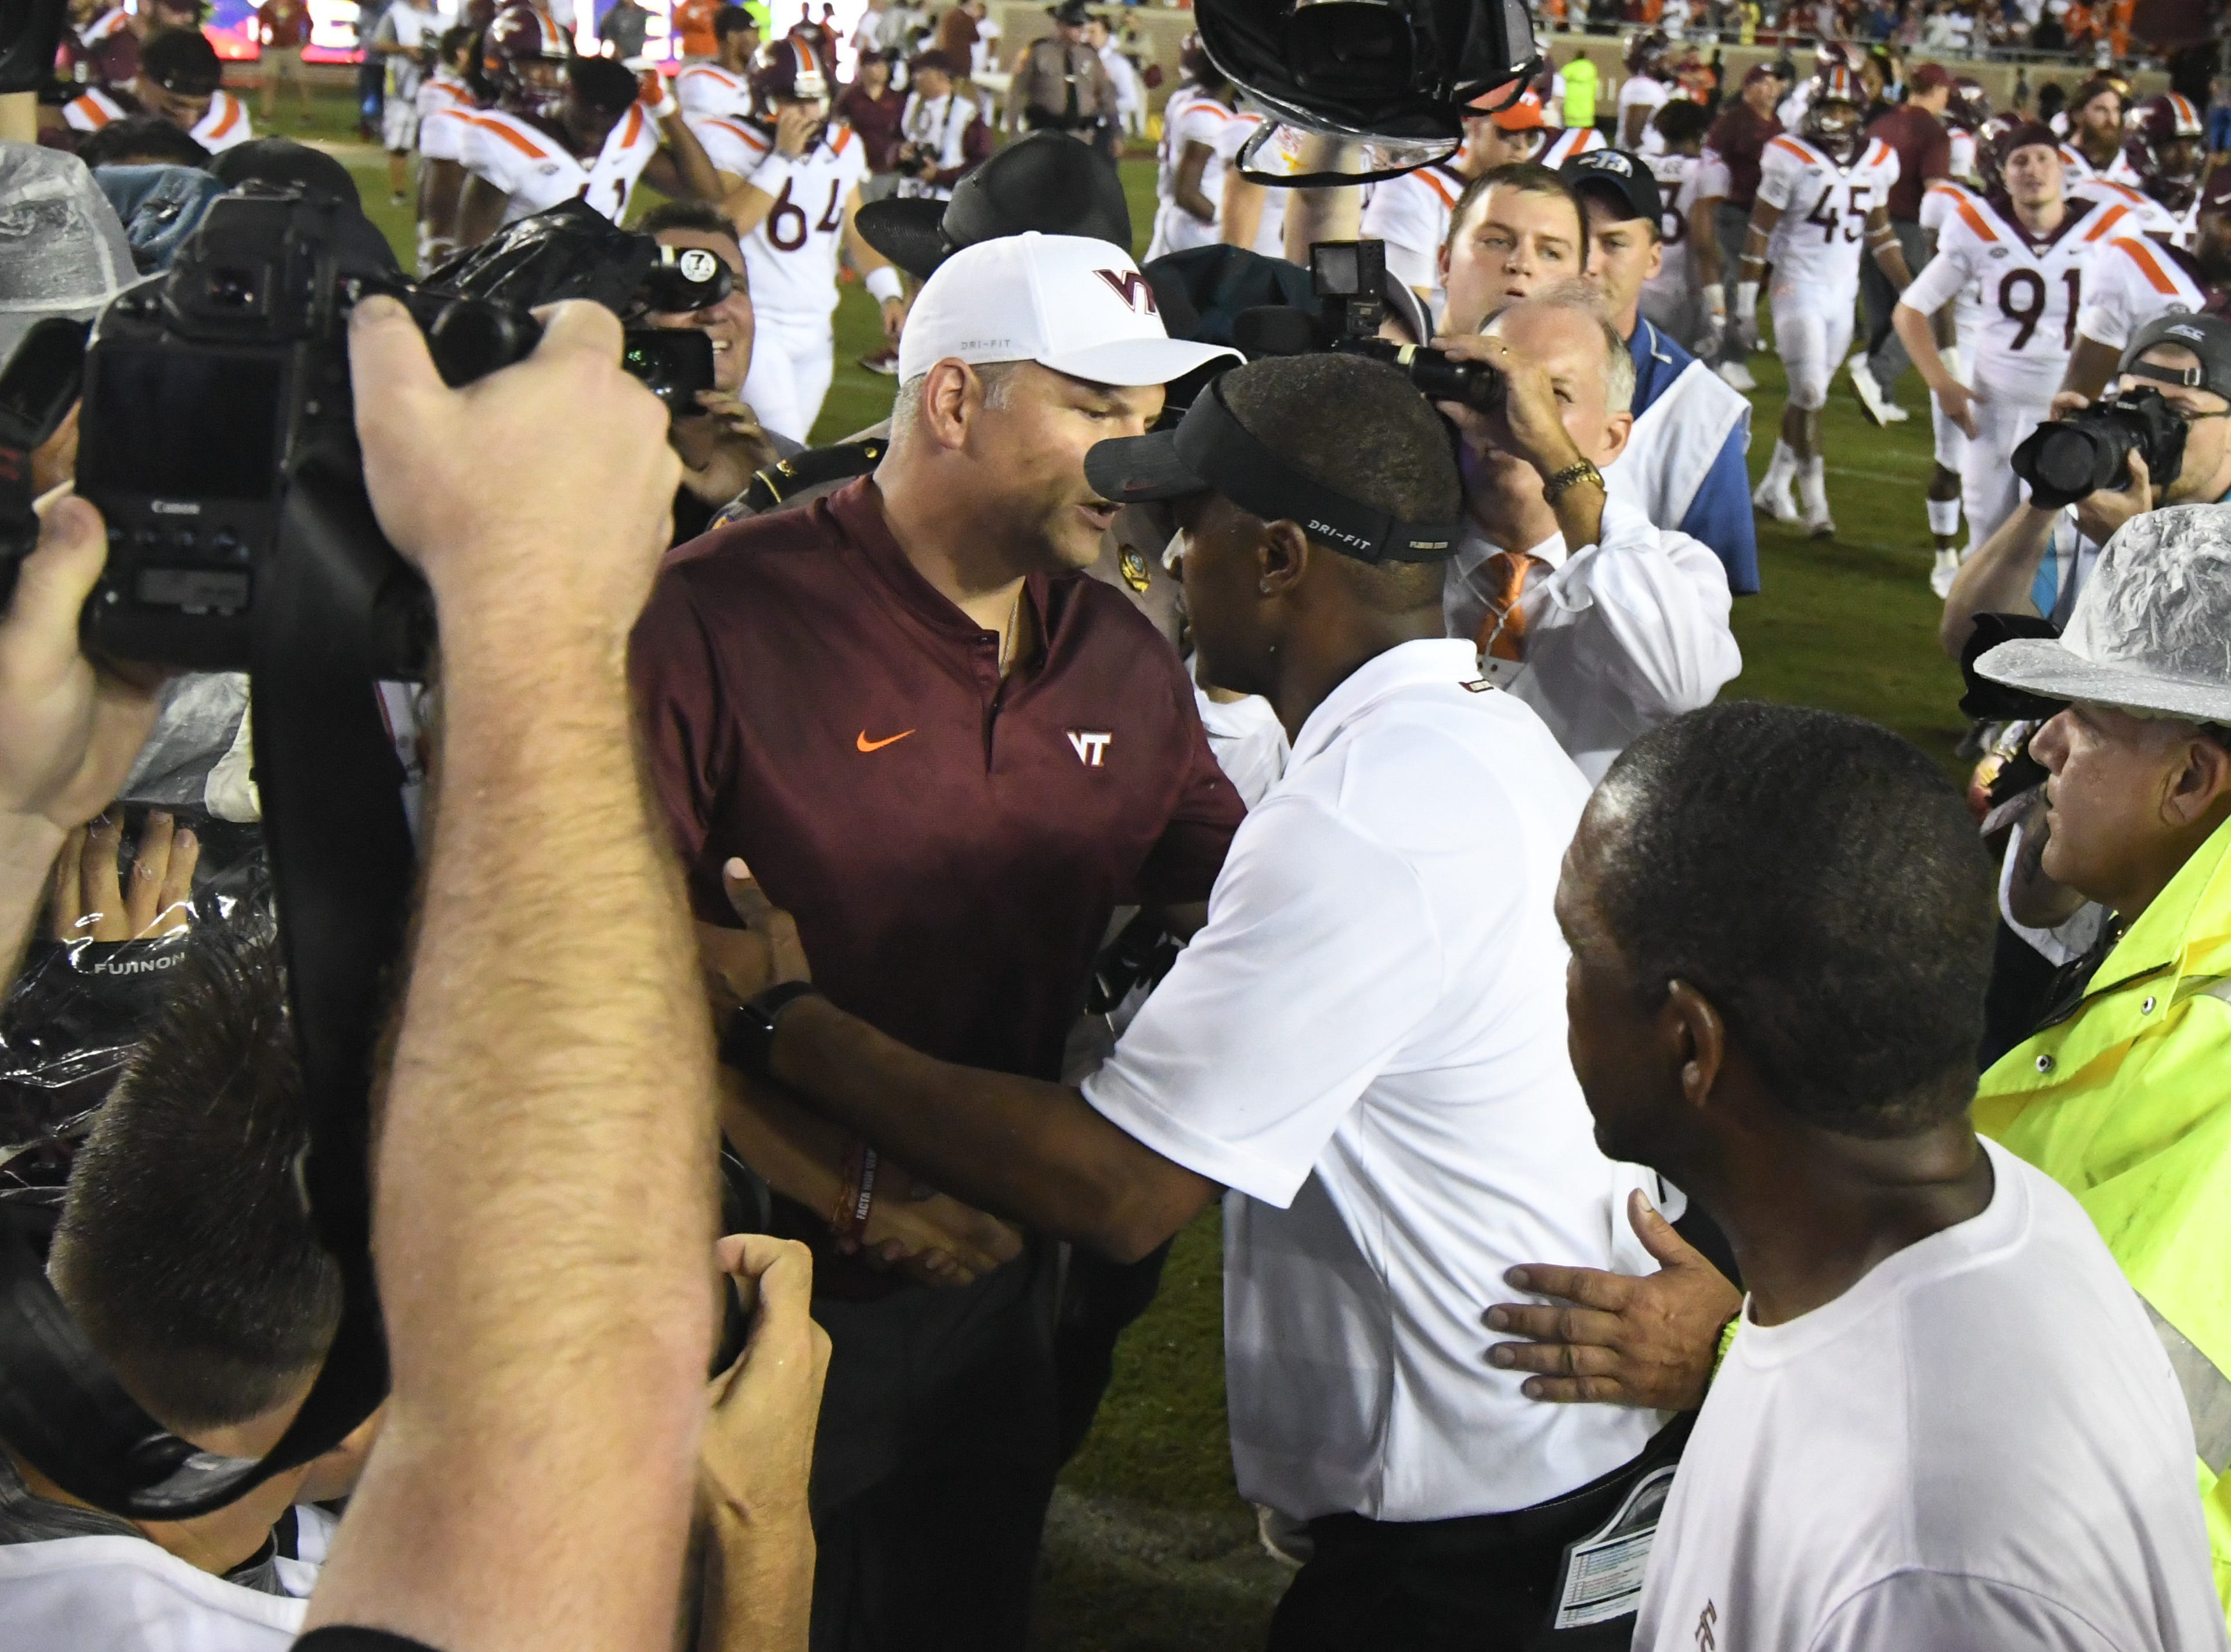 FSU head coach Willie Taggart shaking hands with Virginia head coach Justin Fuente after the game on Monday night at Doak Campbell Stadium.